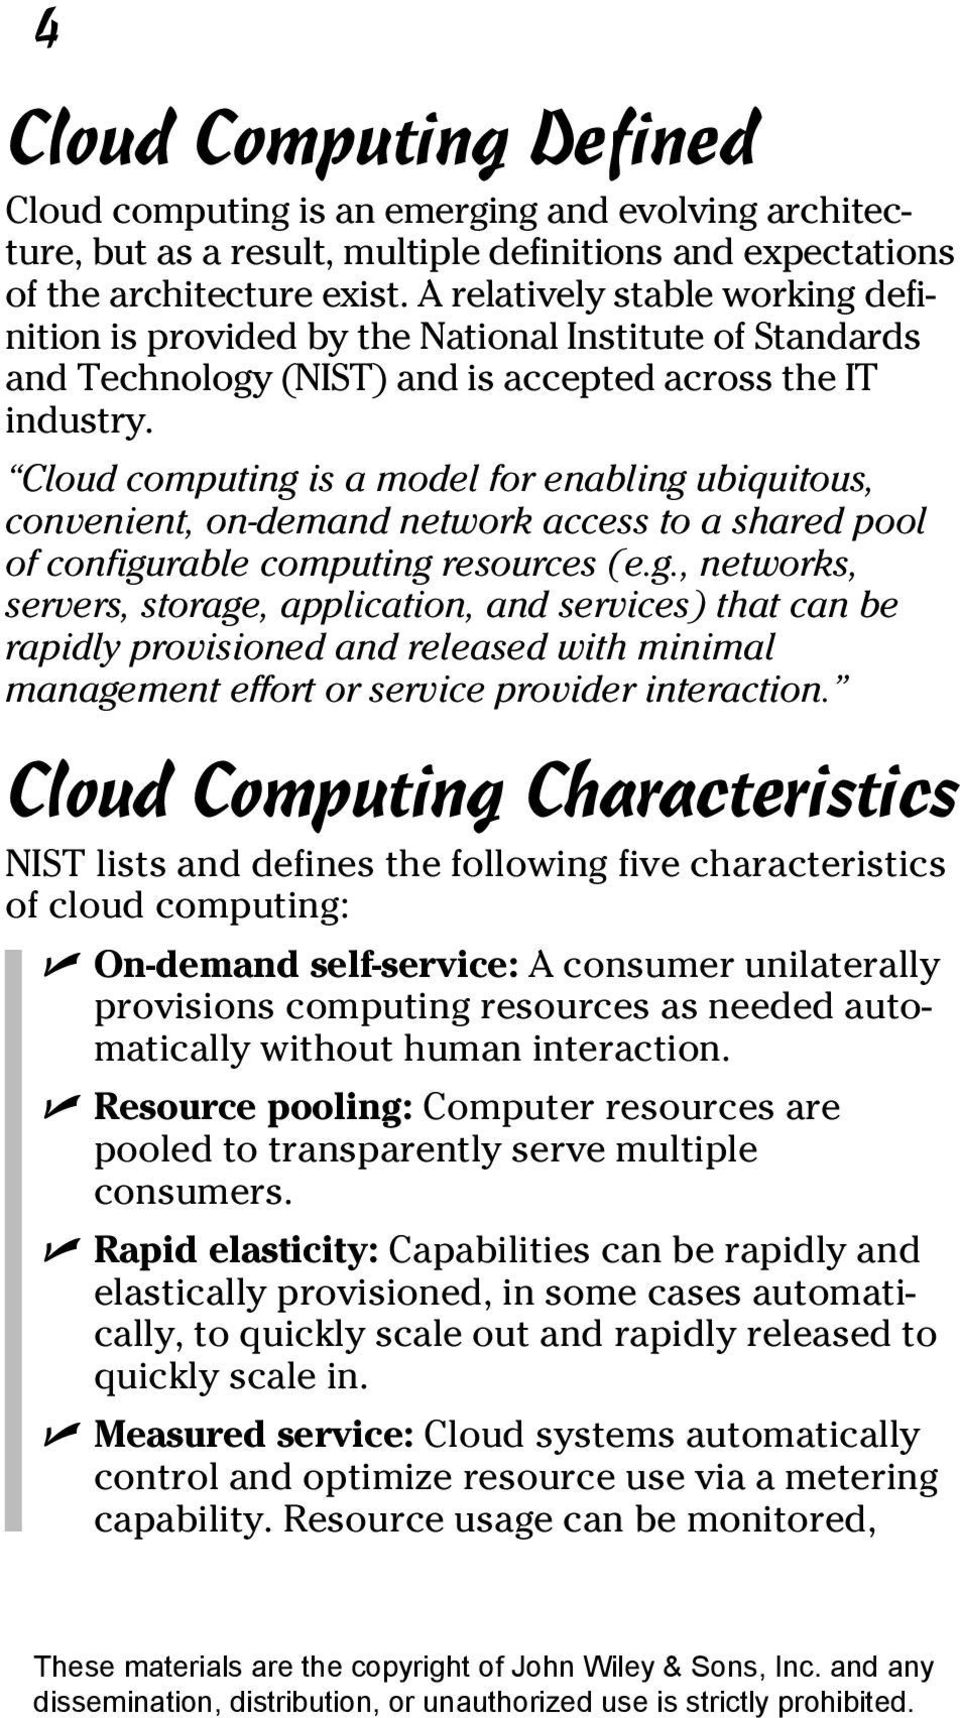 Cloud computing is a model for enabling ubiquitous, convenient, on-demand network access to a shared pool of configurable computing resources (e.g., networks, servers, storage, application, and services) that can be rapidly provisioned and released with minimal management effort or service provider interaction.